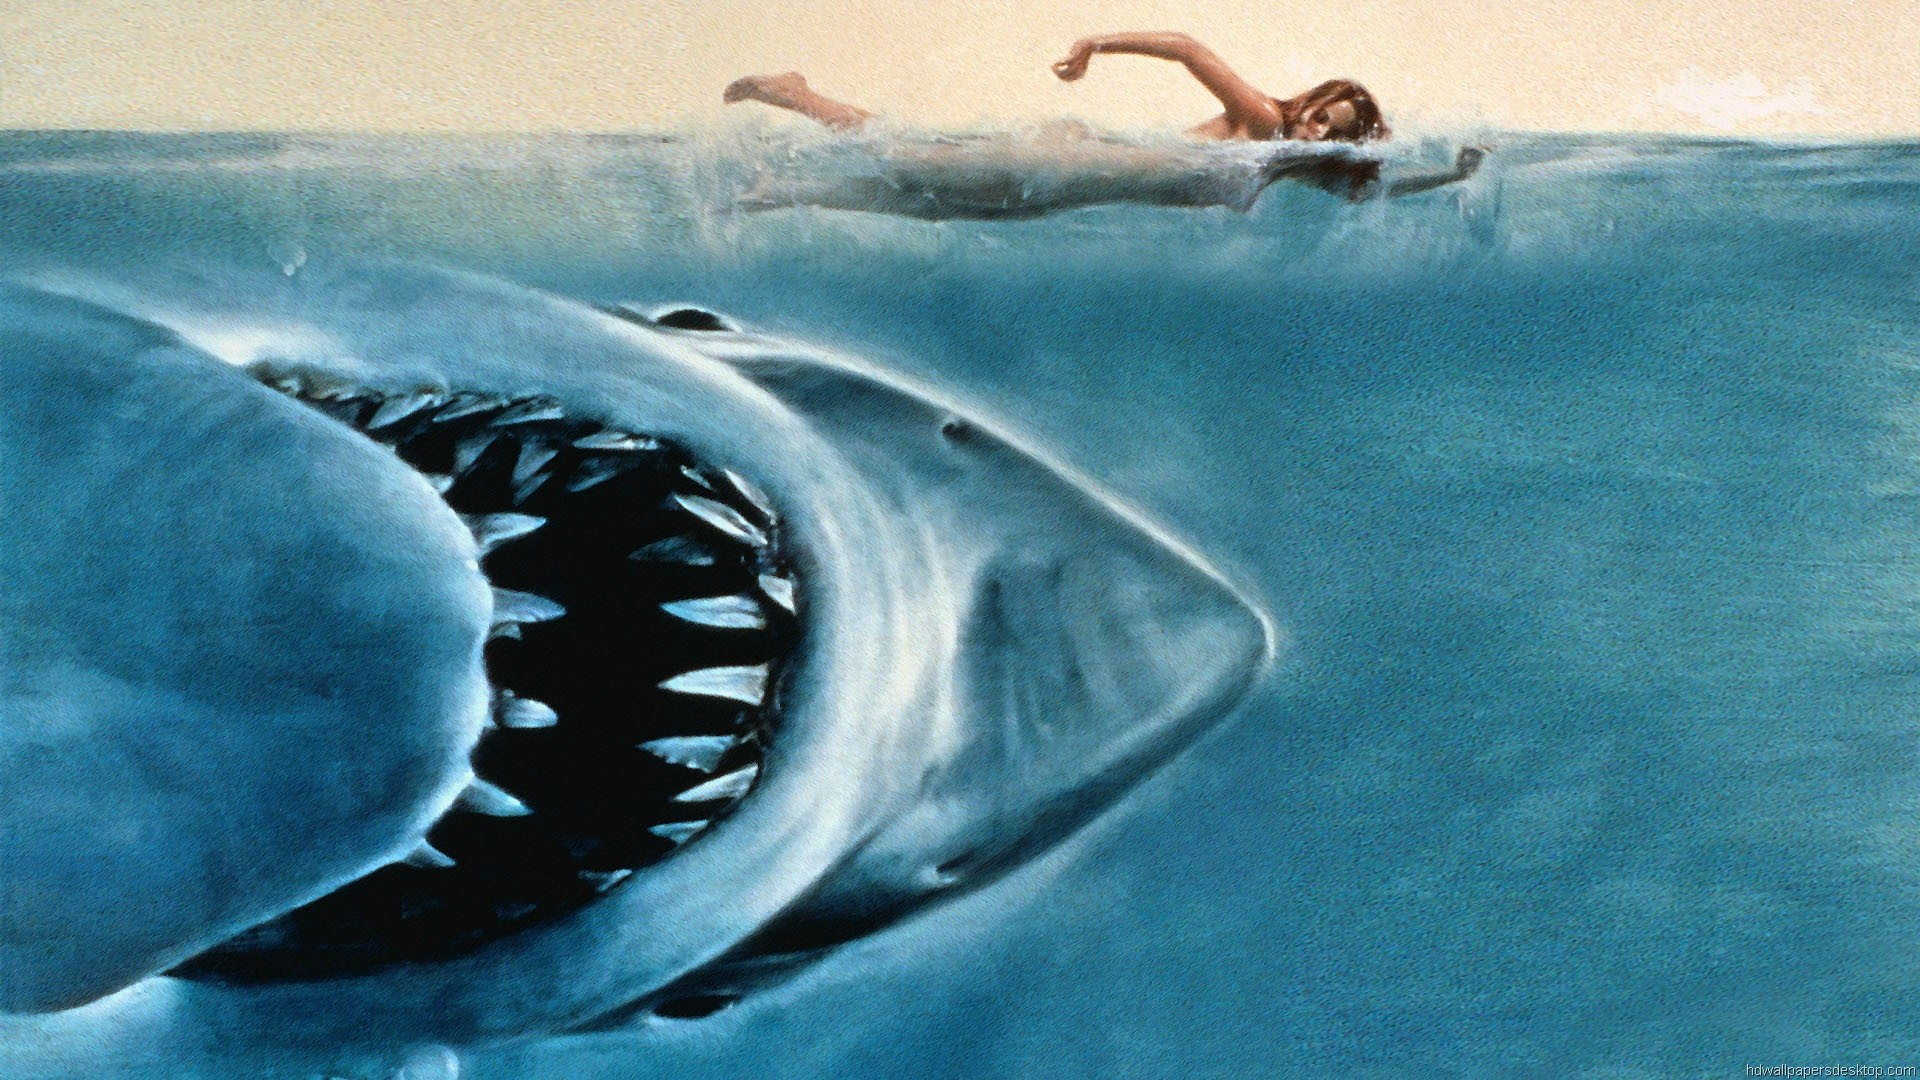 1920x1080 Jaws Wallpaper, HD, Movie Wallpaper, Full HD 1080p,